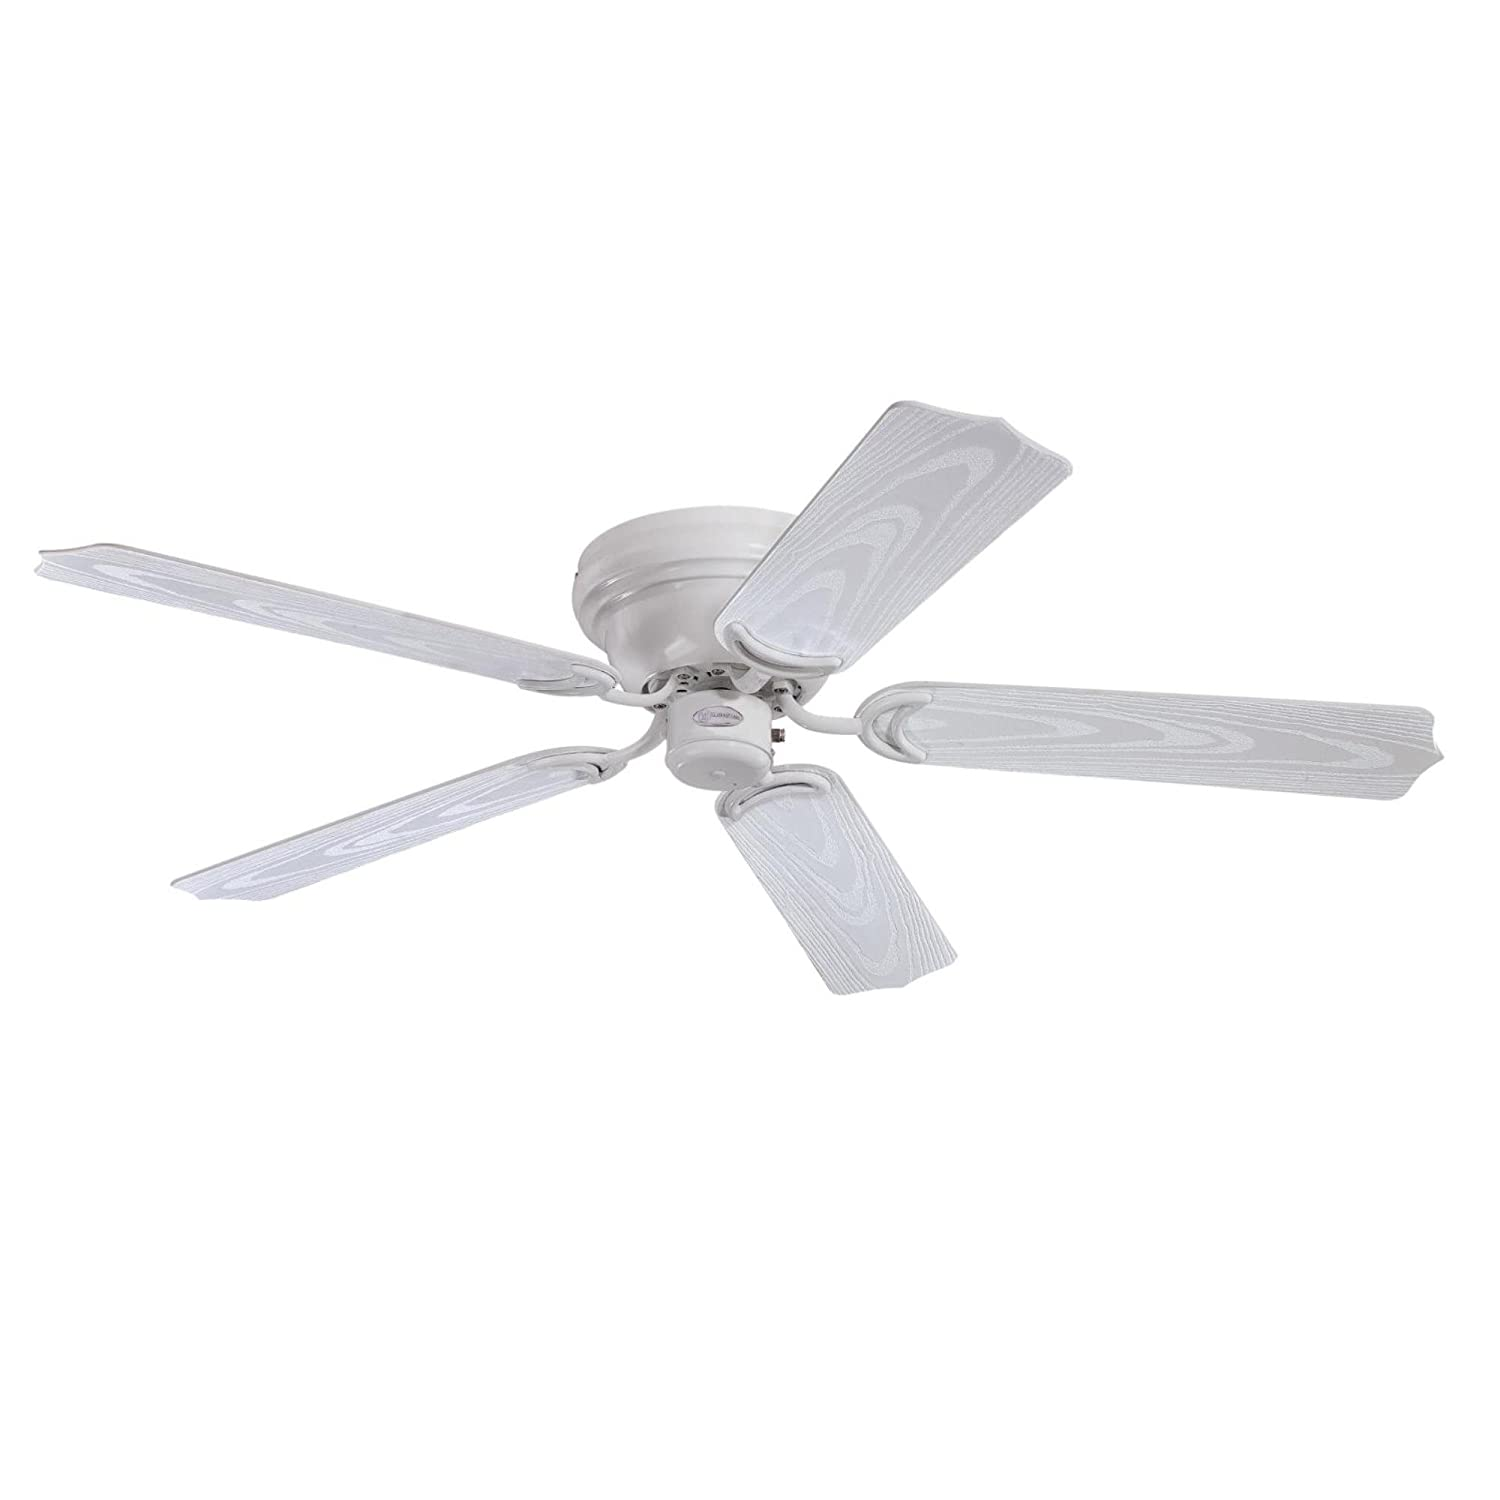 Westinghouse 7217200 Contempra 48-Inch White Indoor/Outdoor Ceiling Fan